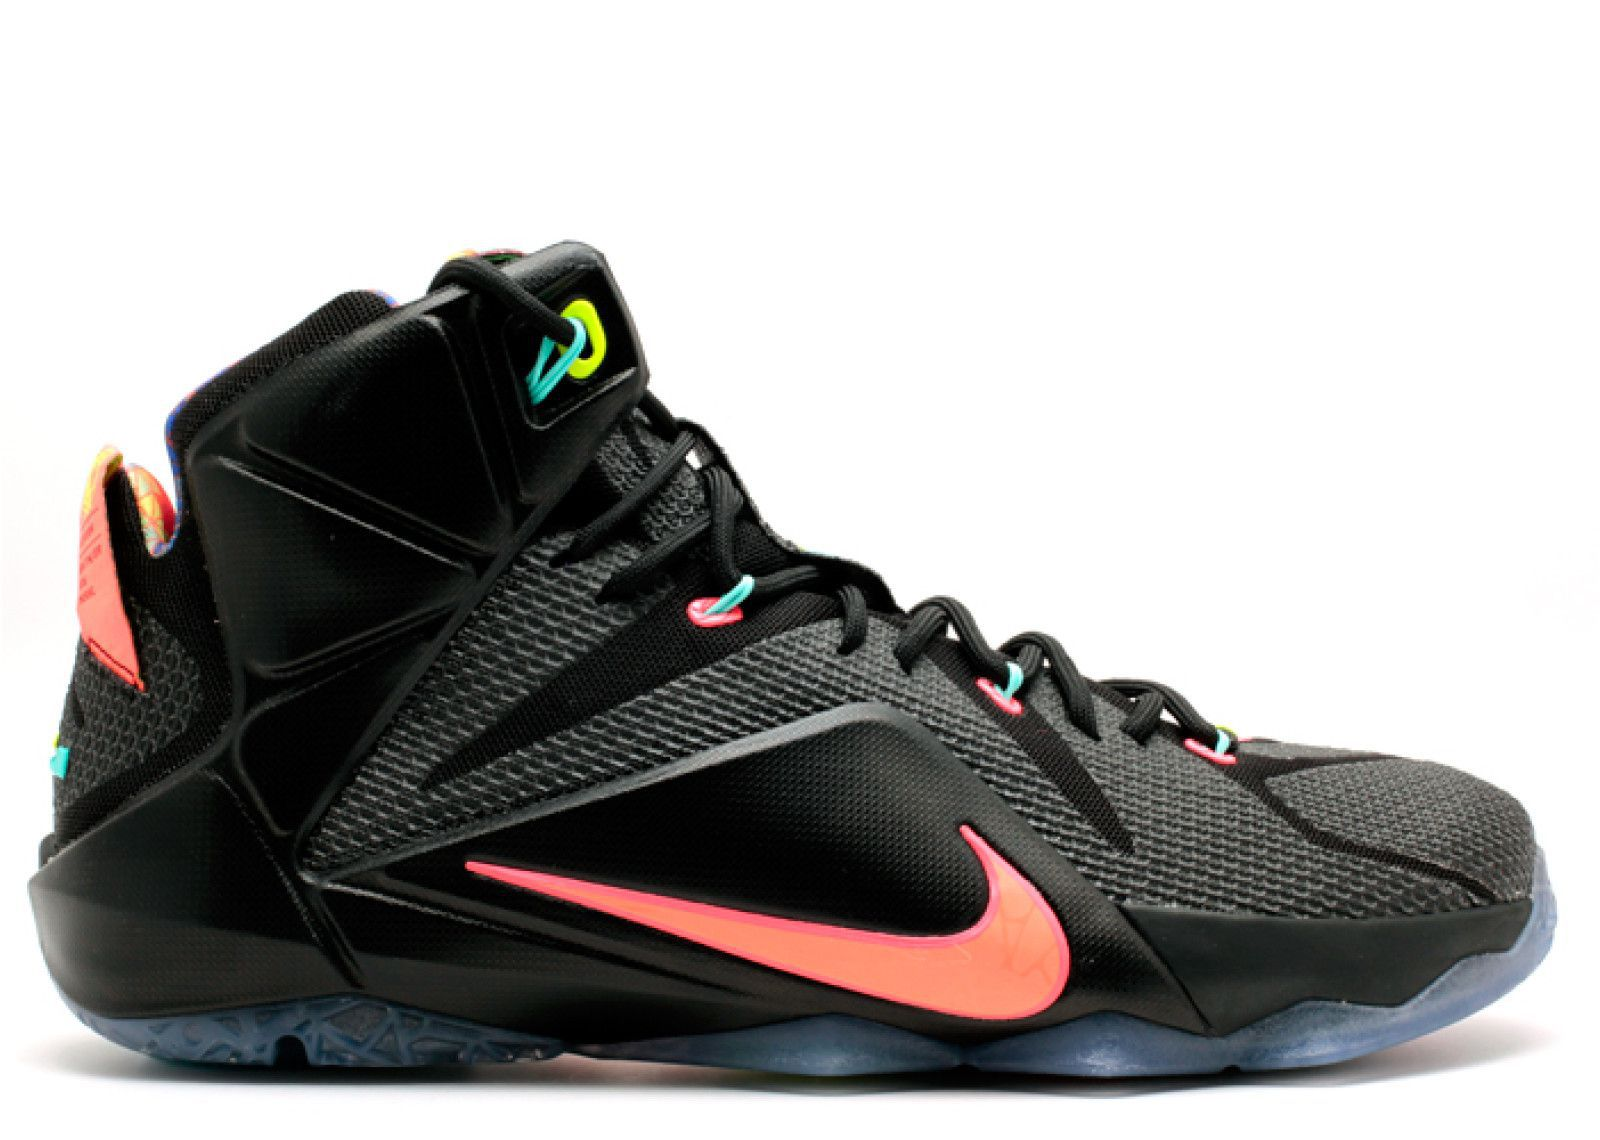 4ceeacba786 Nike Lebron 12 MNG Fashion Multi Color Basketball Shoes - Buy Nike Lebron 12  MNG Fashion Multi Color Basketball Shoes Online at Best Prices in India on  ...